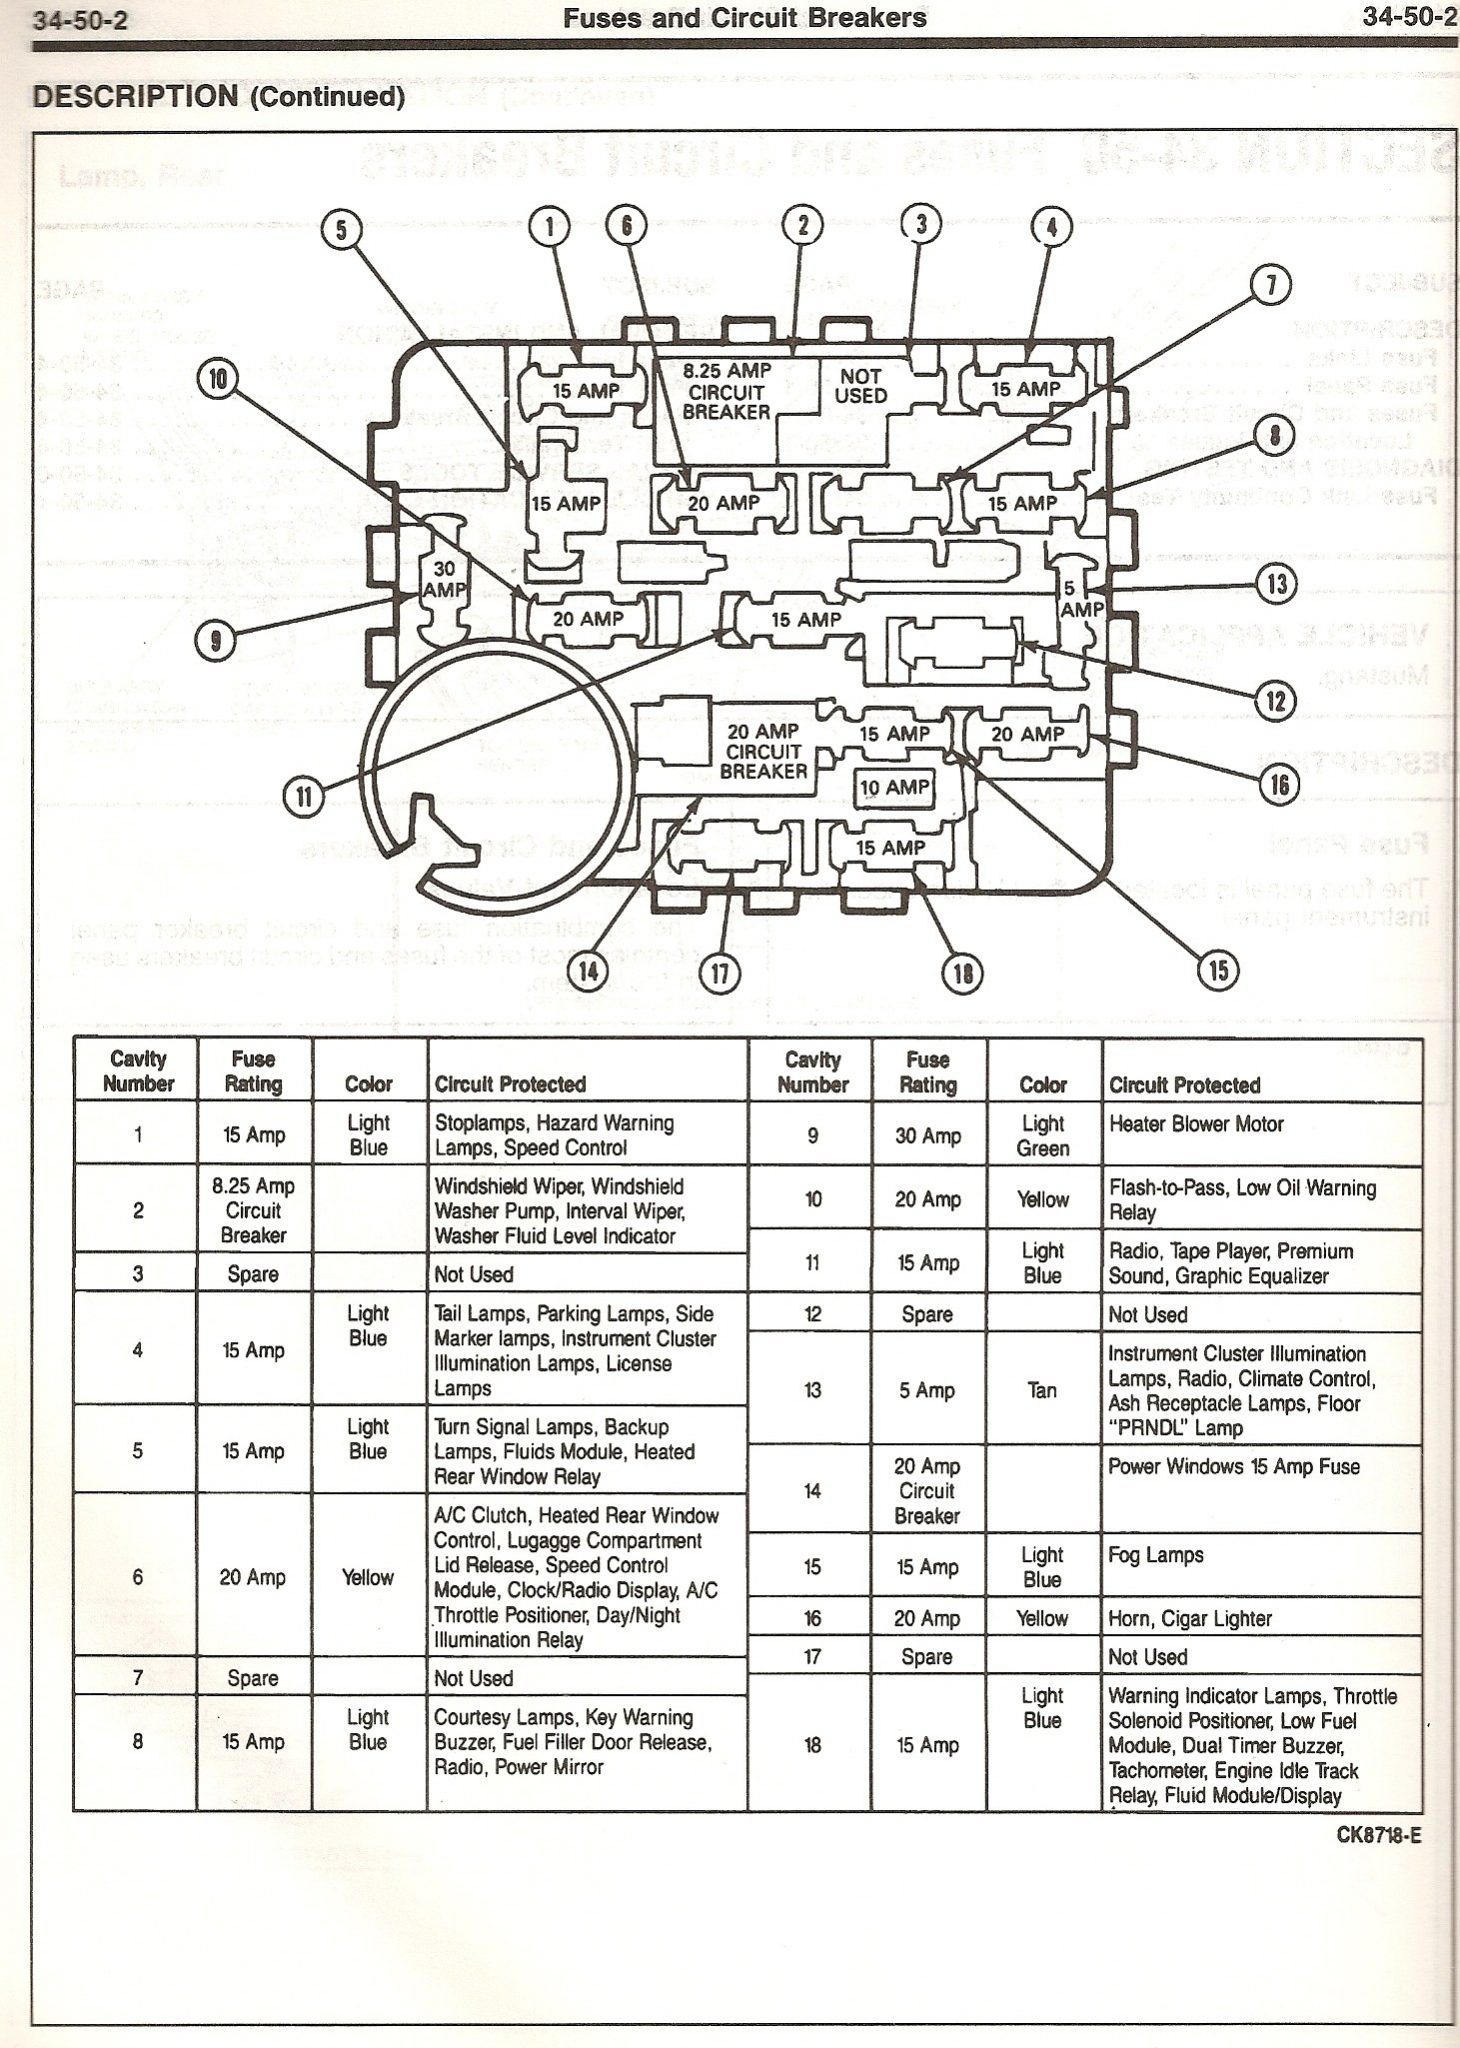 hight resolution of 1990 ford f 250 5 0 fuse diagram wiring diagram used 1990 ford taurus fuse box diagram 1990 ford fuse box diagram